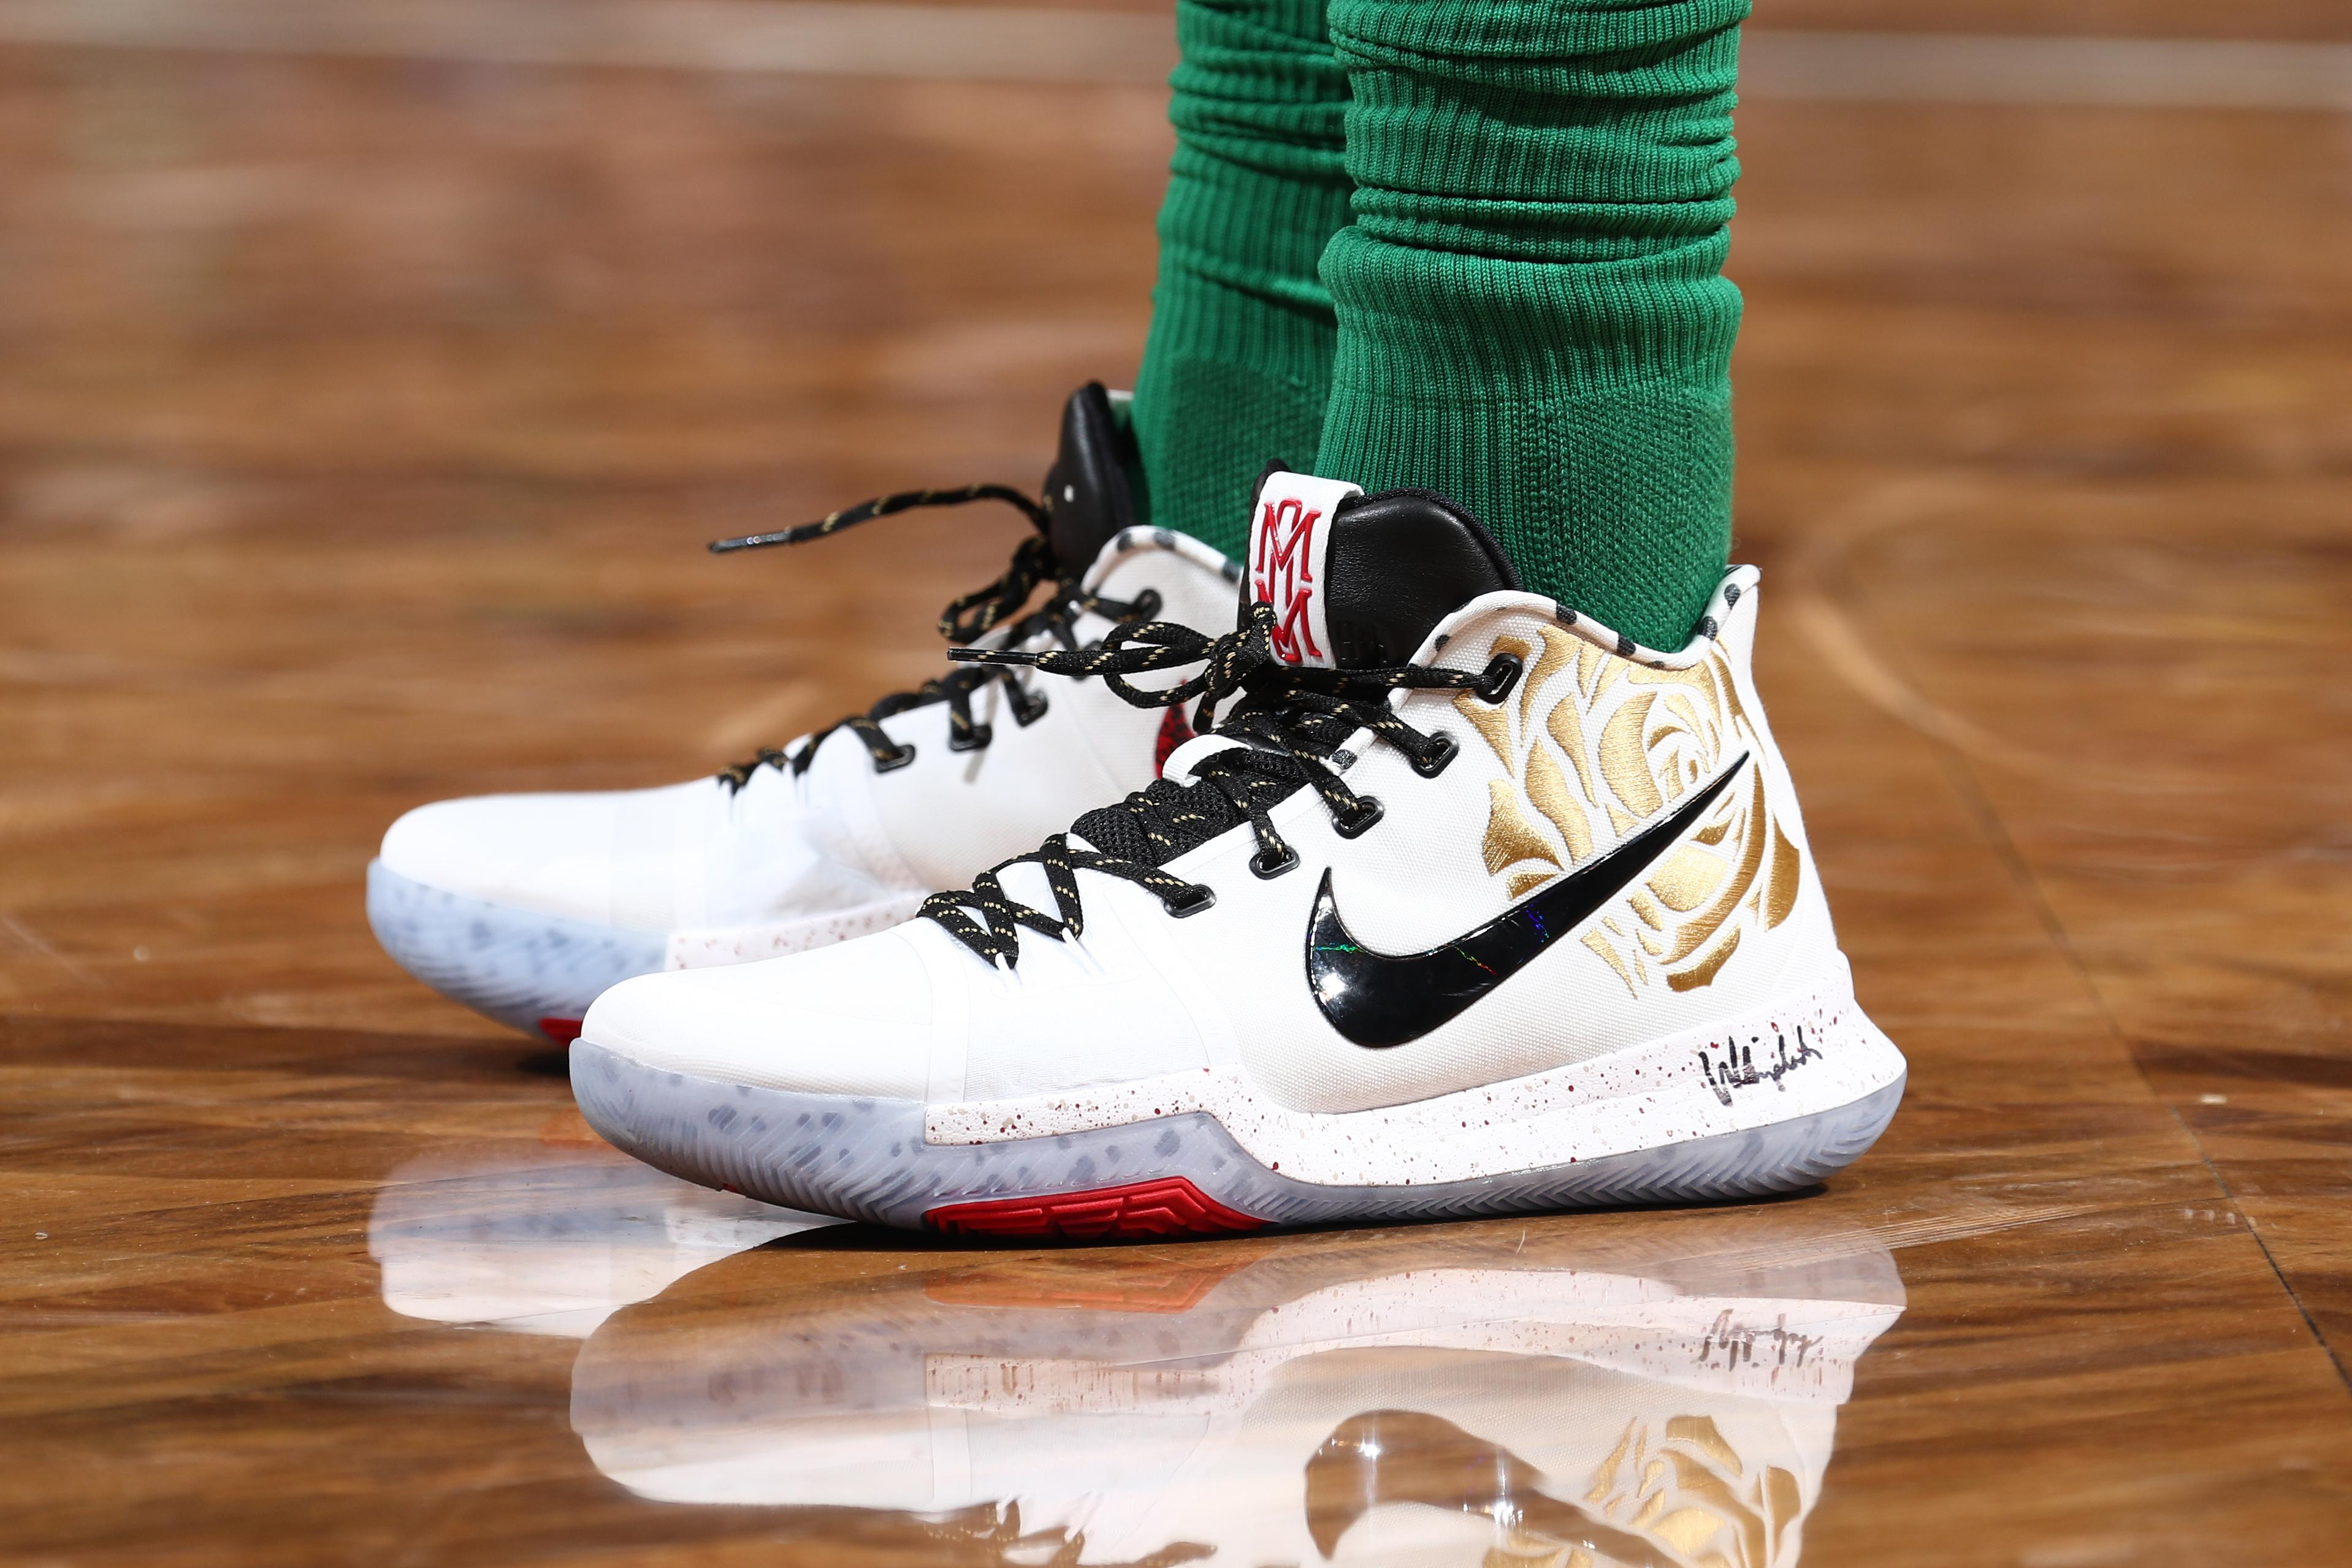 new product b2861 06e68 hot nike kyrie 3 white gold 378037 003 944c1 8148c  spain kyrie irving pays  tribute to his late mom with special edition sneakers 6c5cb 04f43